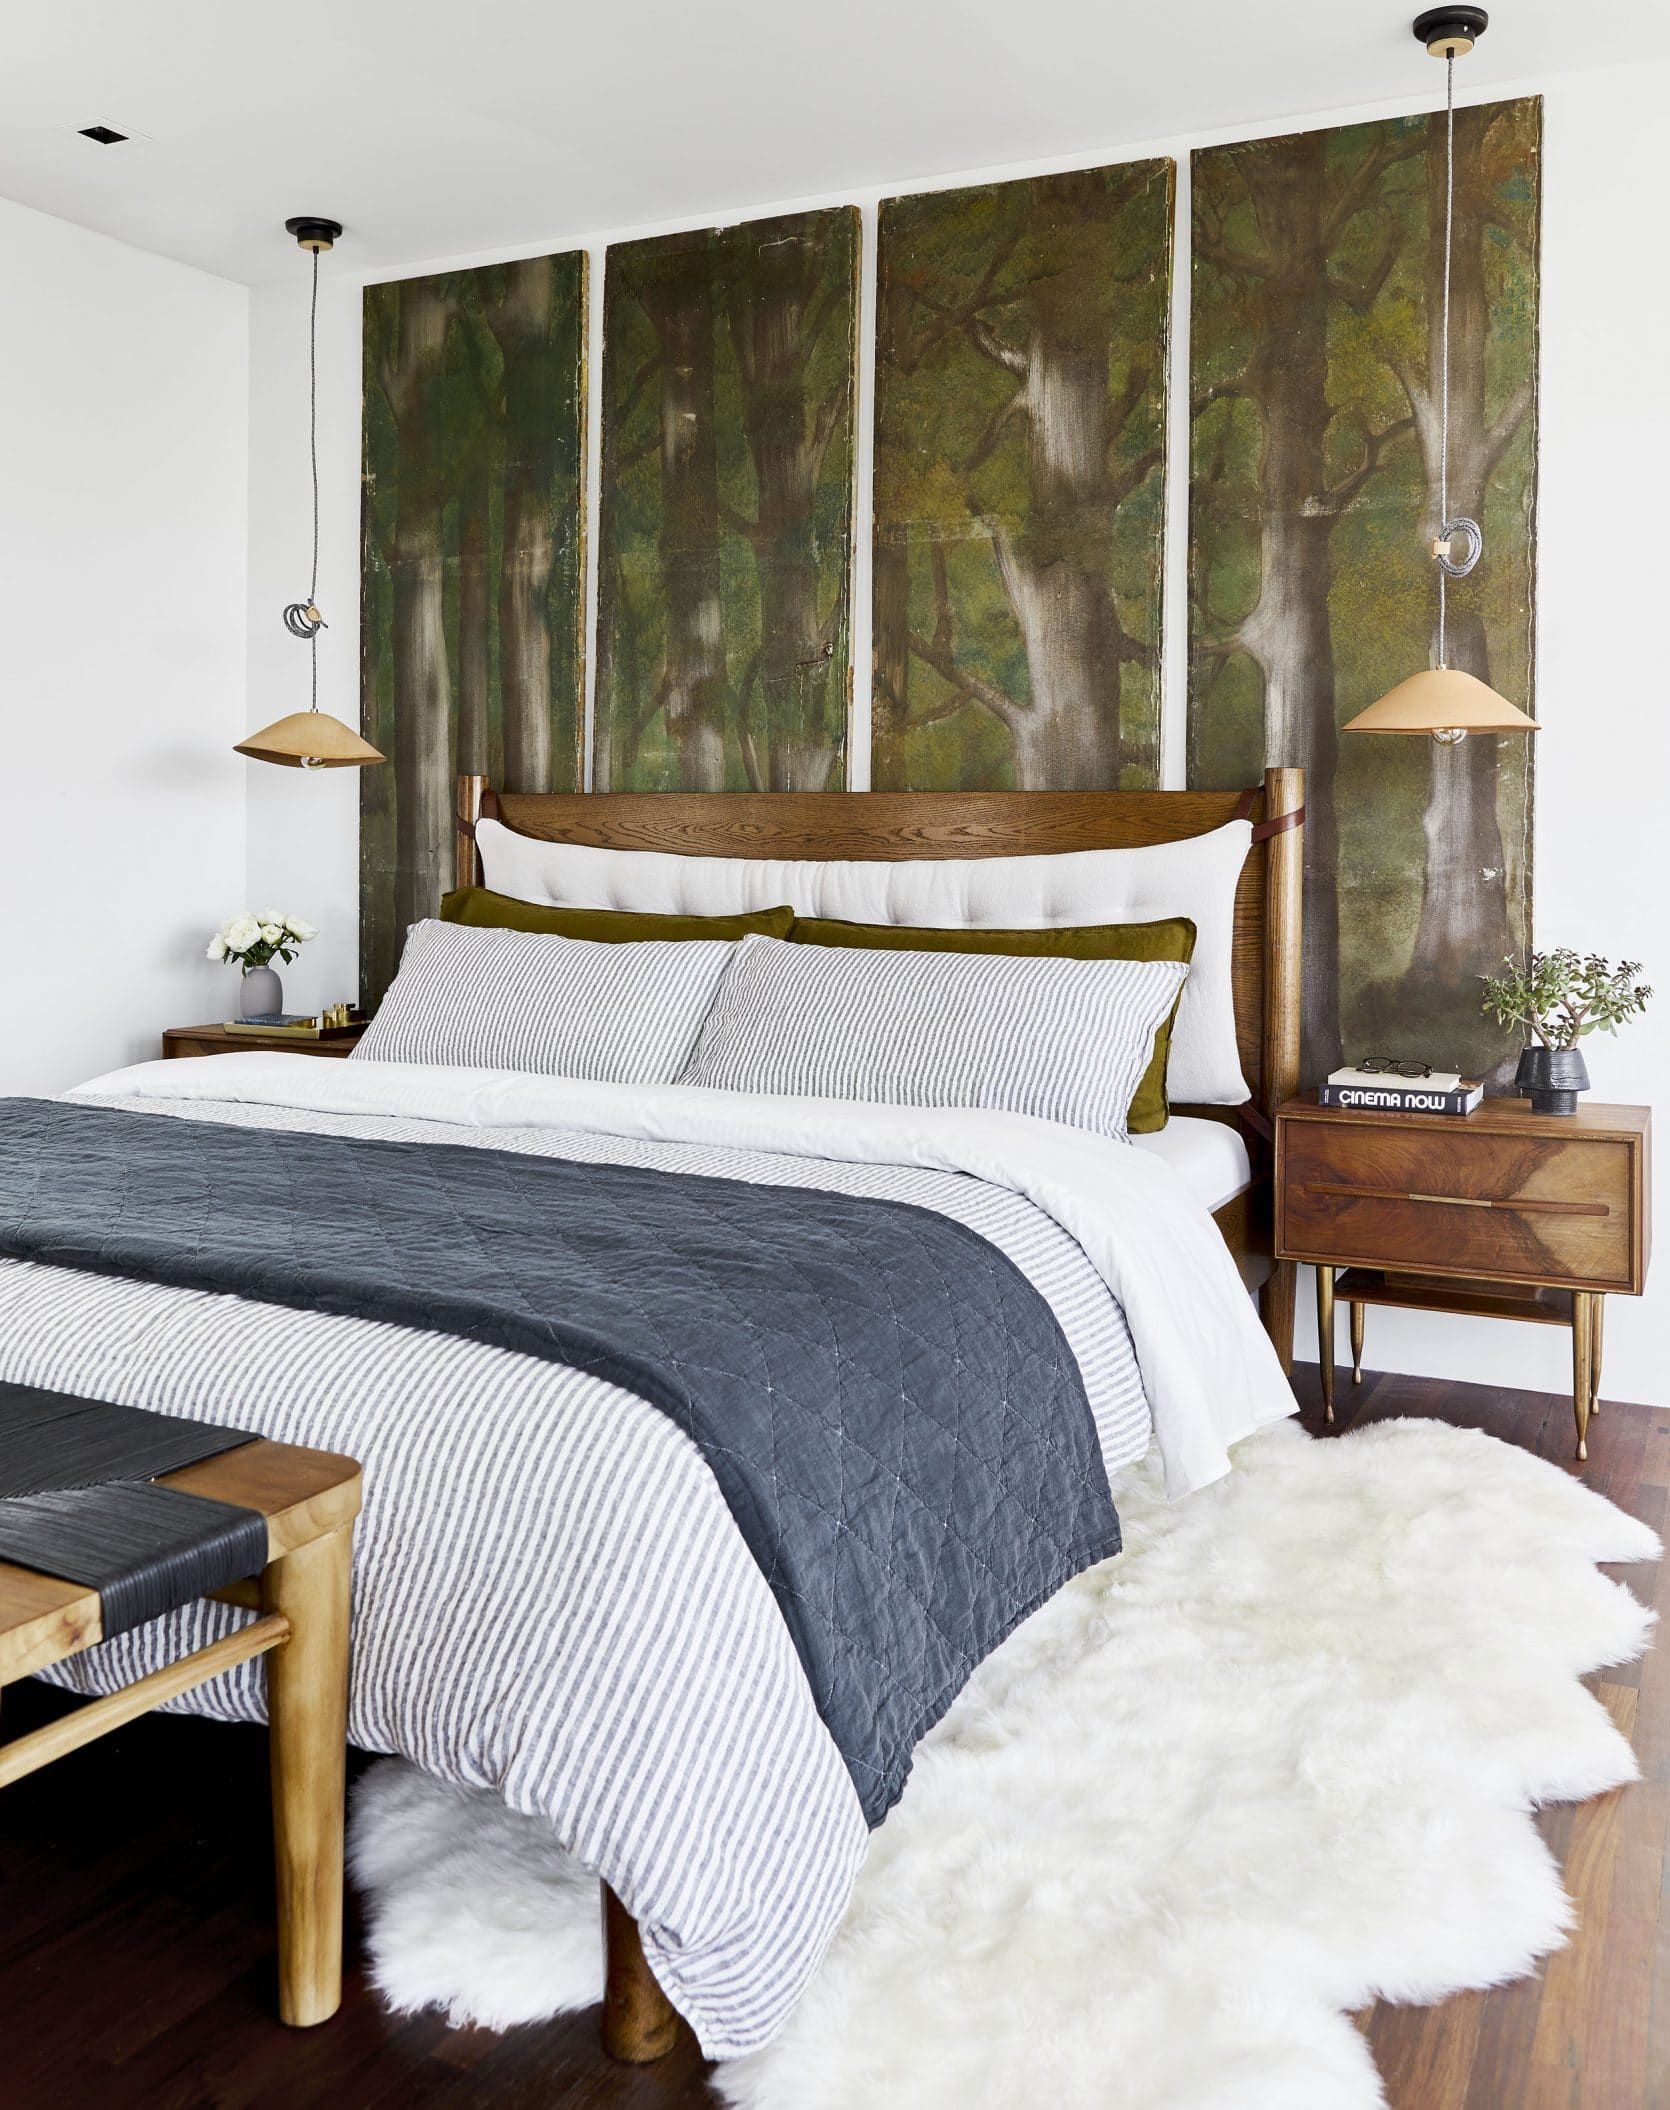 Budget Power Couples Beds And Nightstands For Every Style All